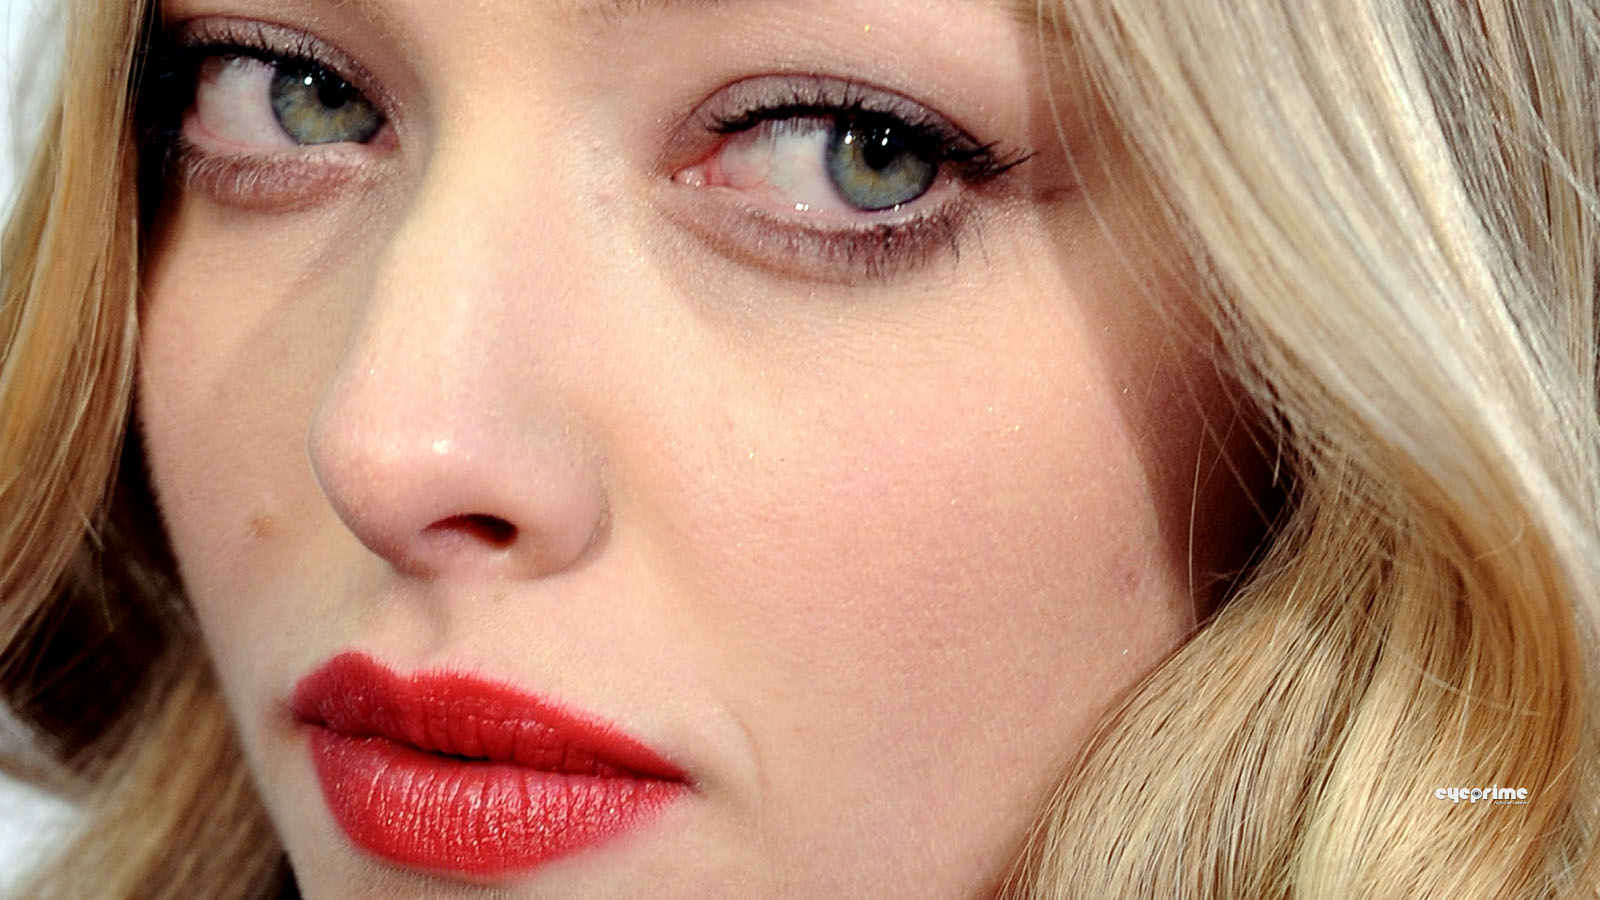 amanda - amanda-seyfried Photo Amanda Seyfried